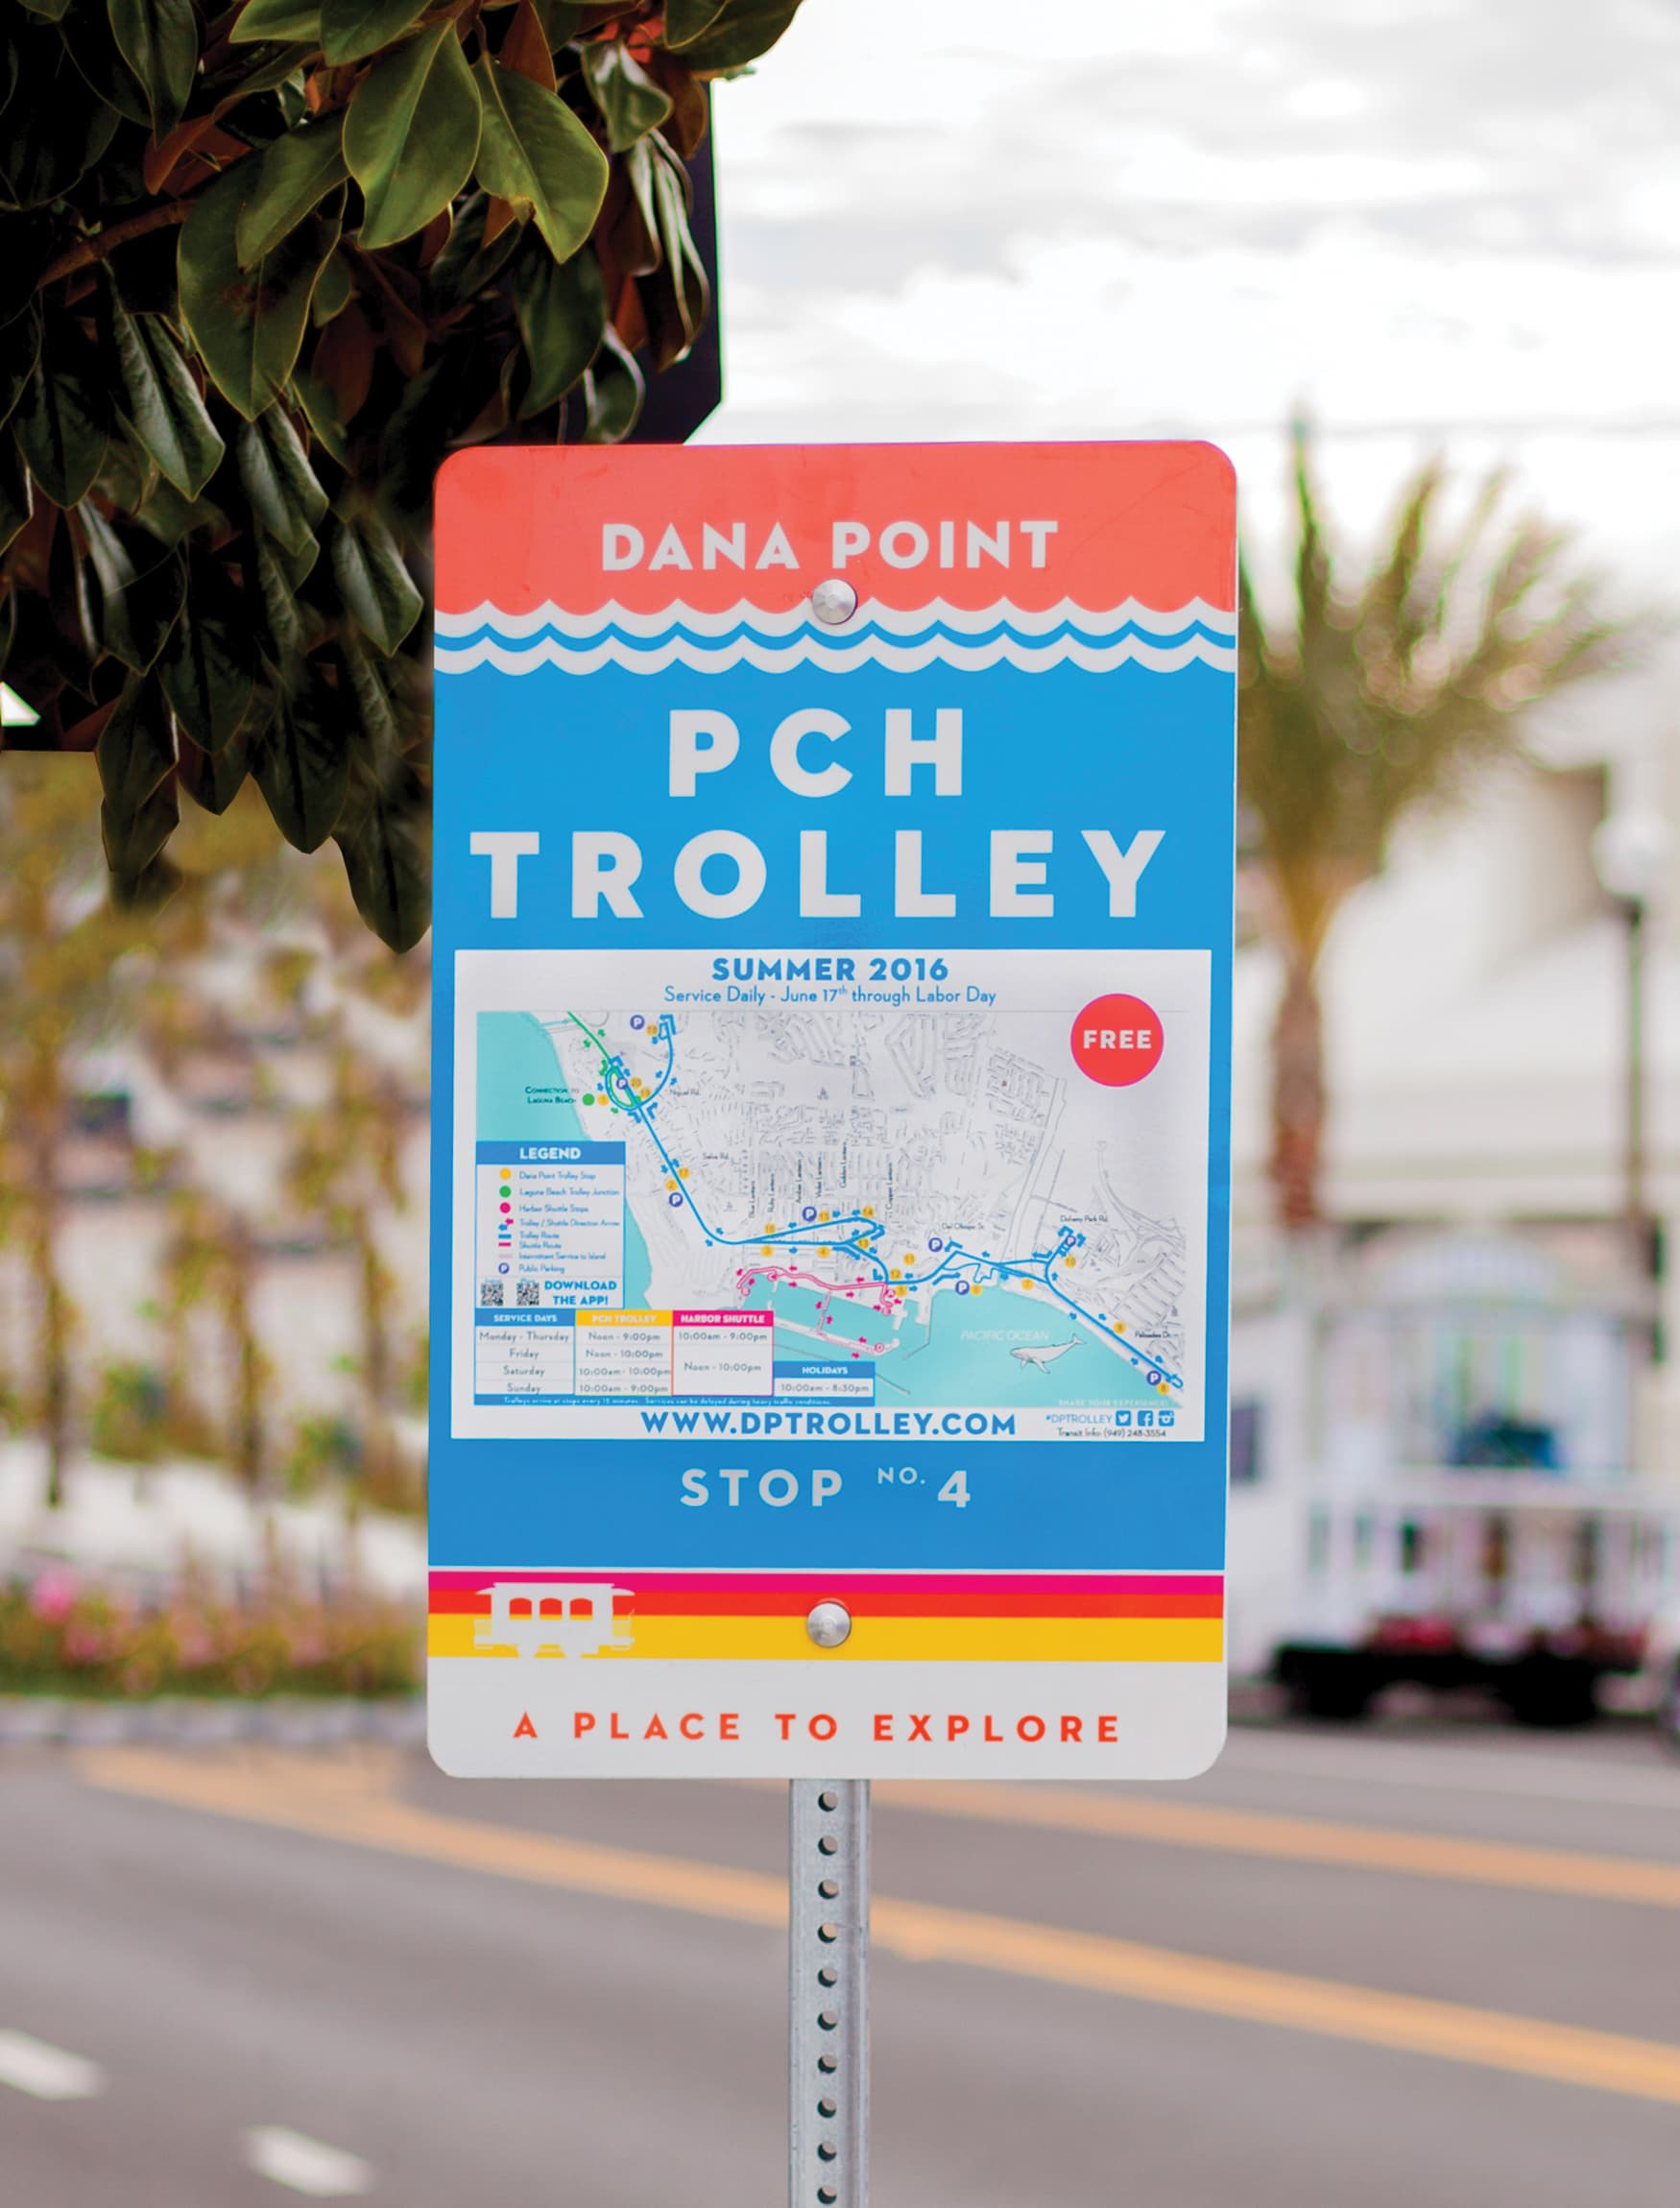 The City of Dana Point transit sign civic design